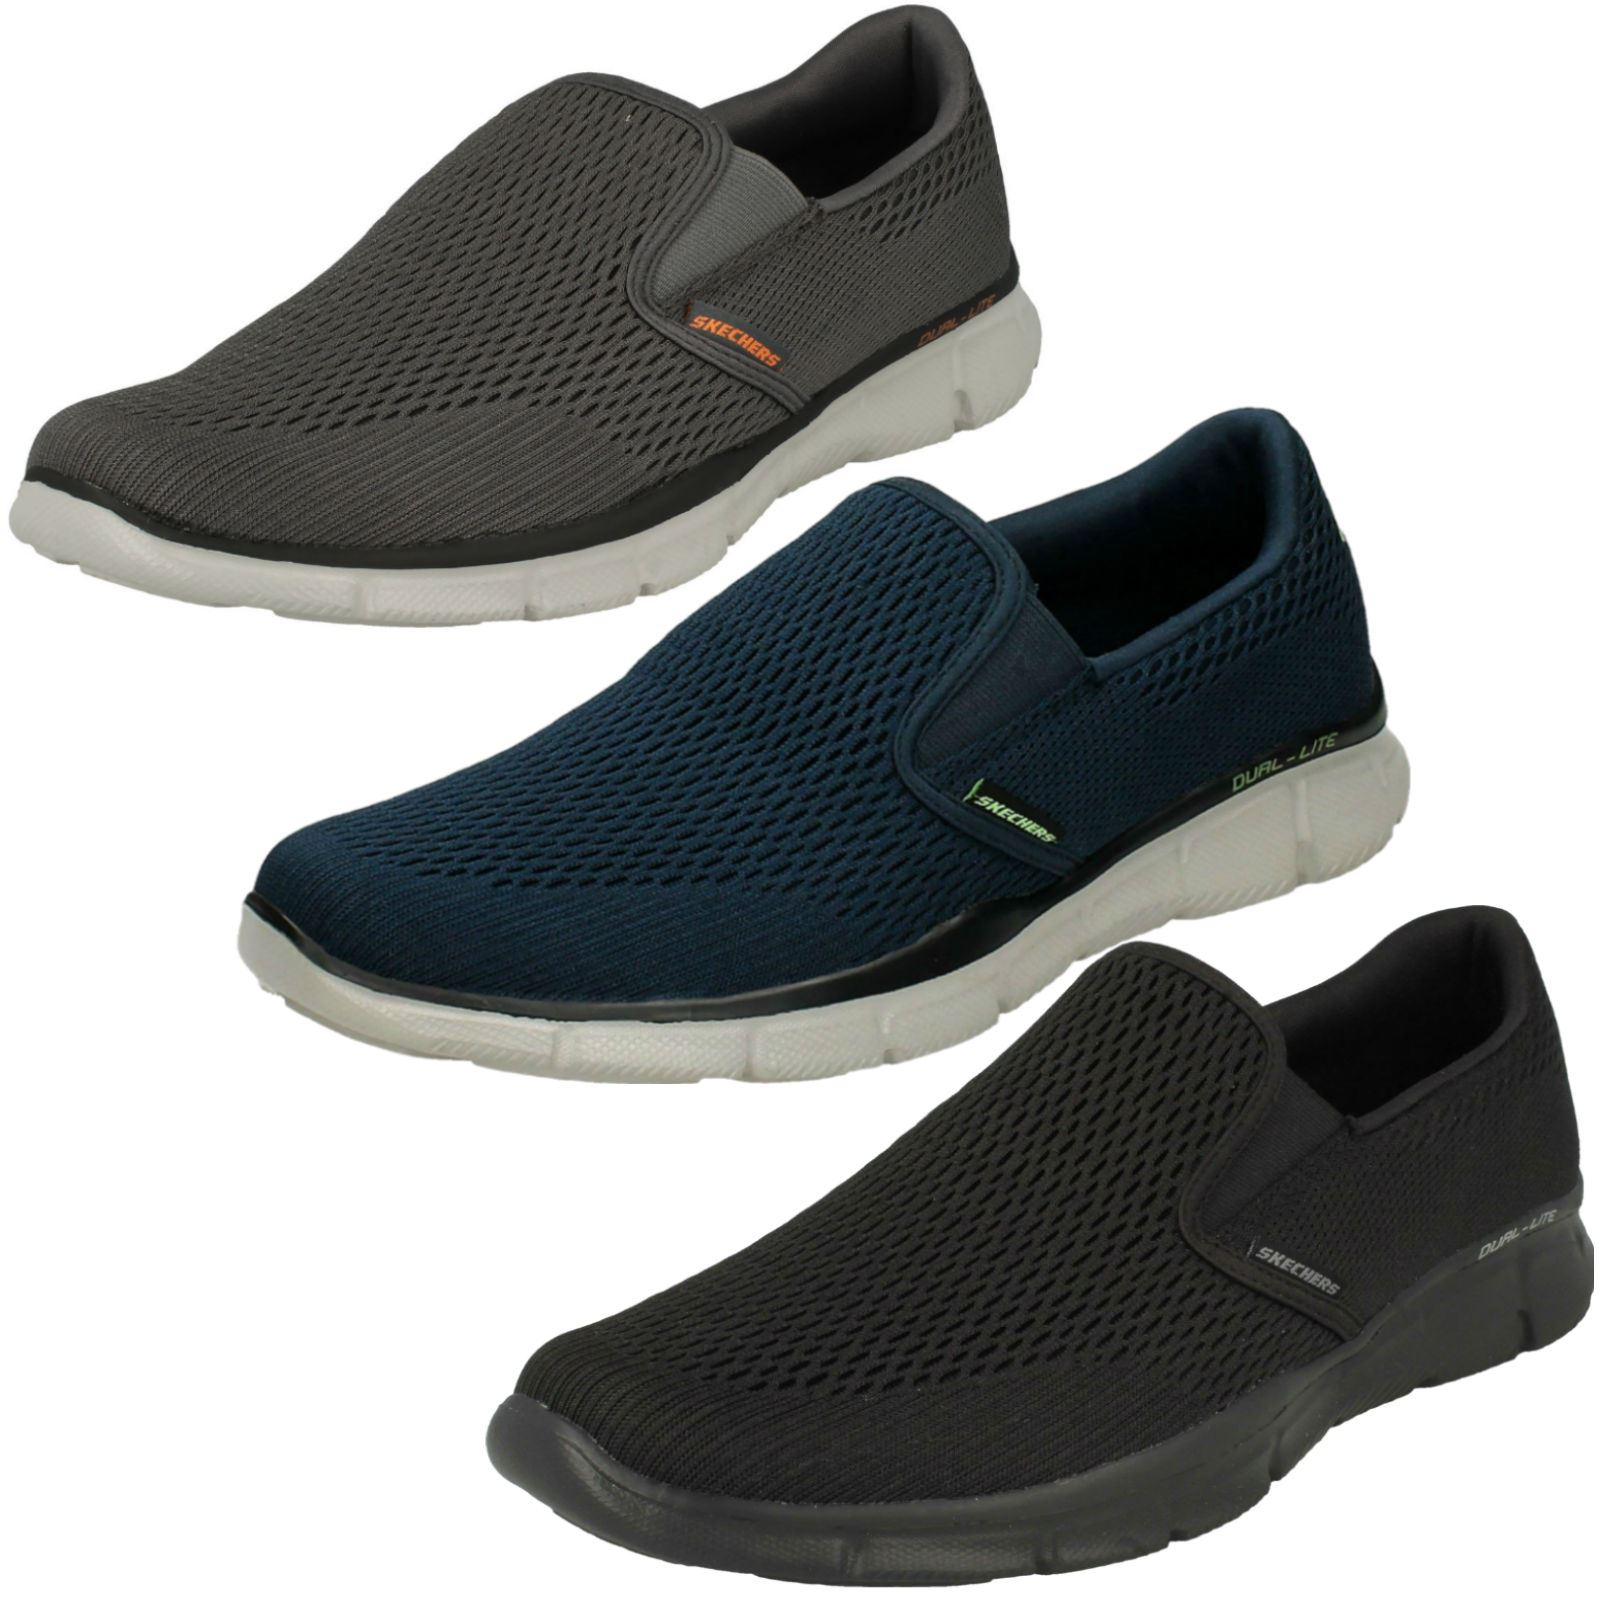 skechers shoes memory foam for men